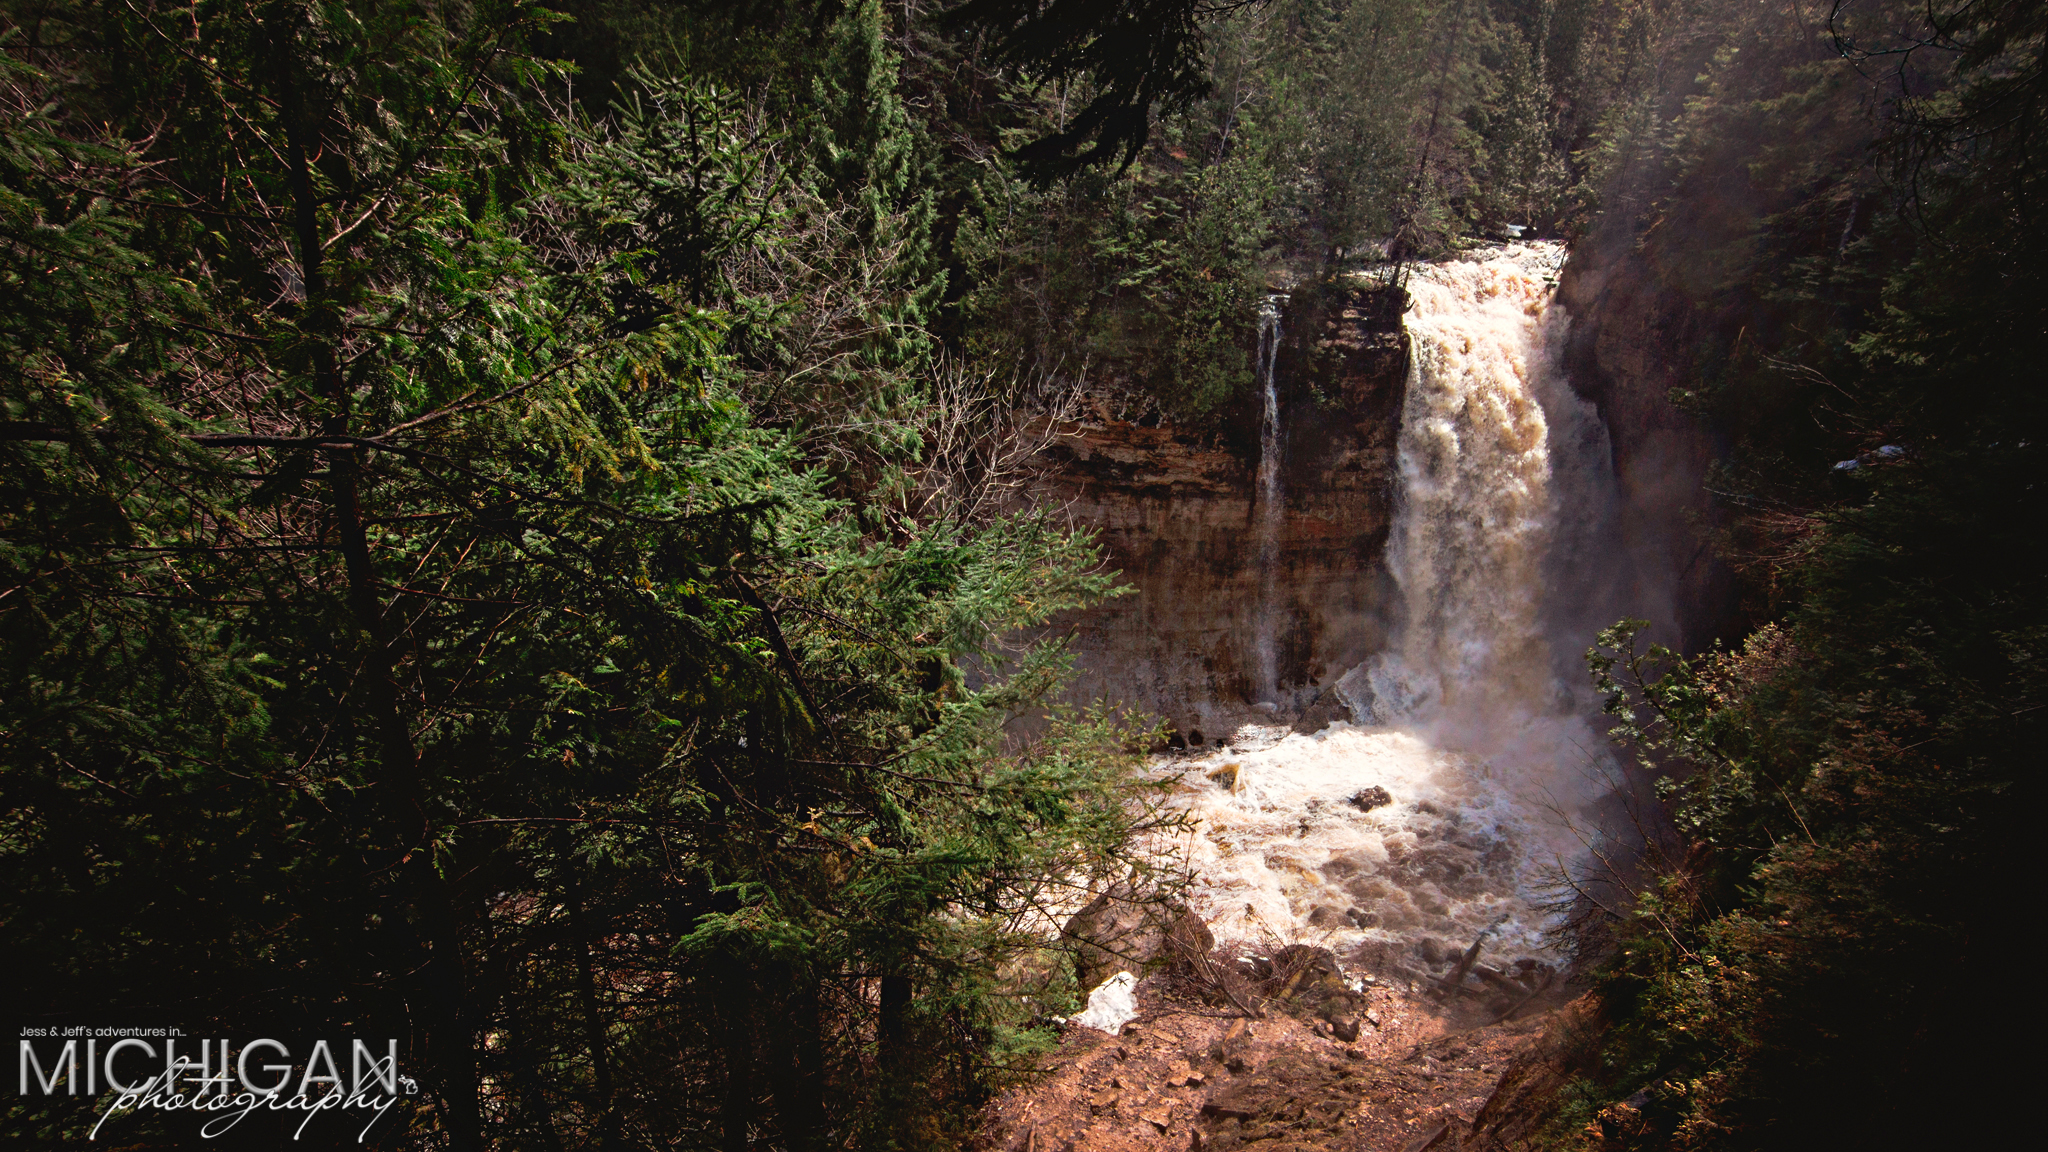 Miners Falls at Pictured Rocks National Lakeshore in Munising MI